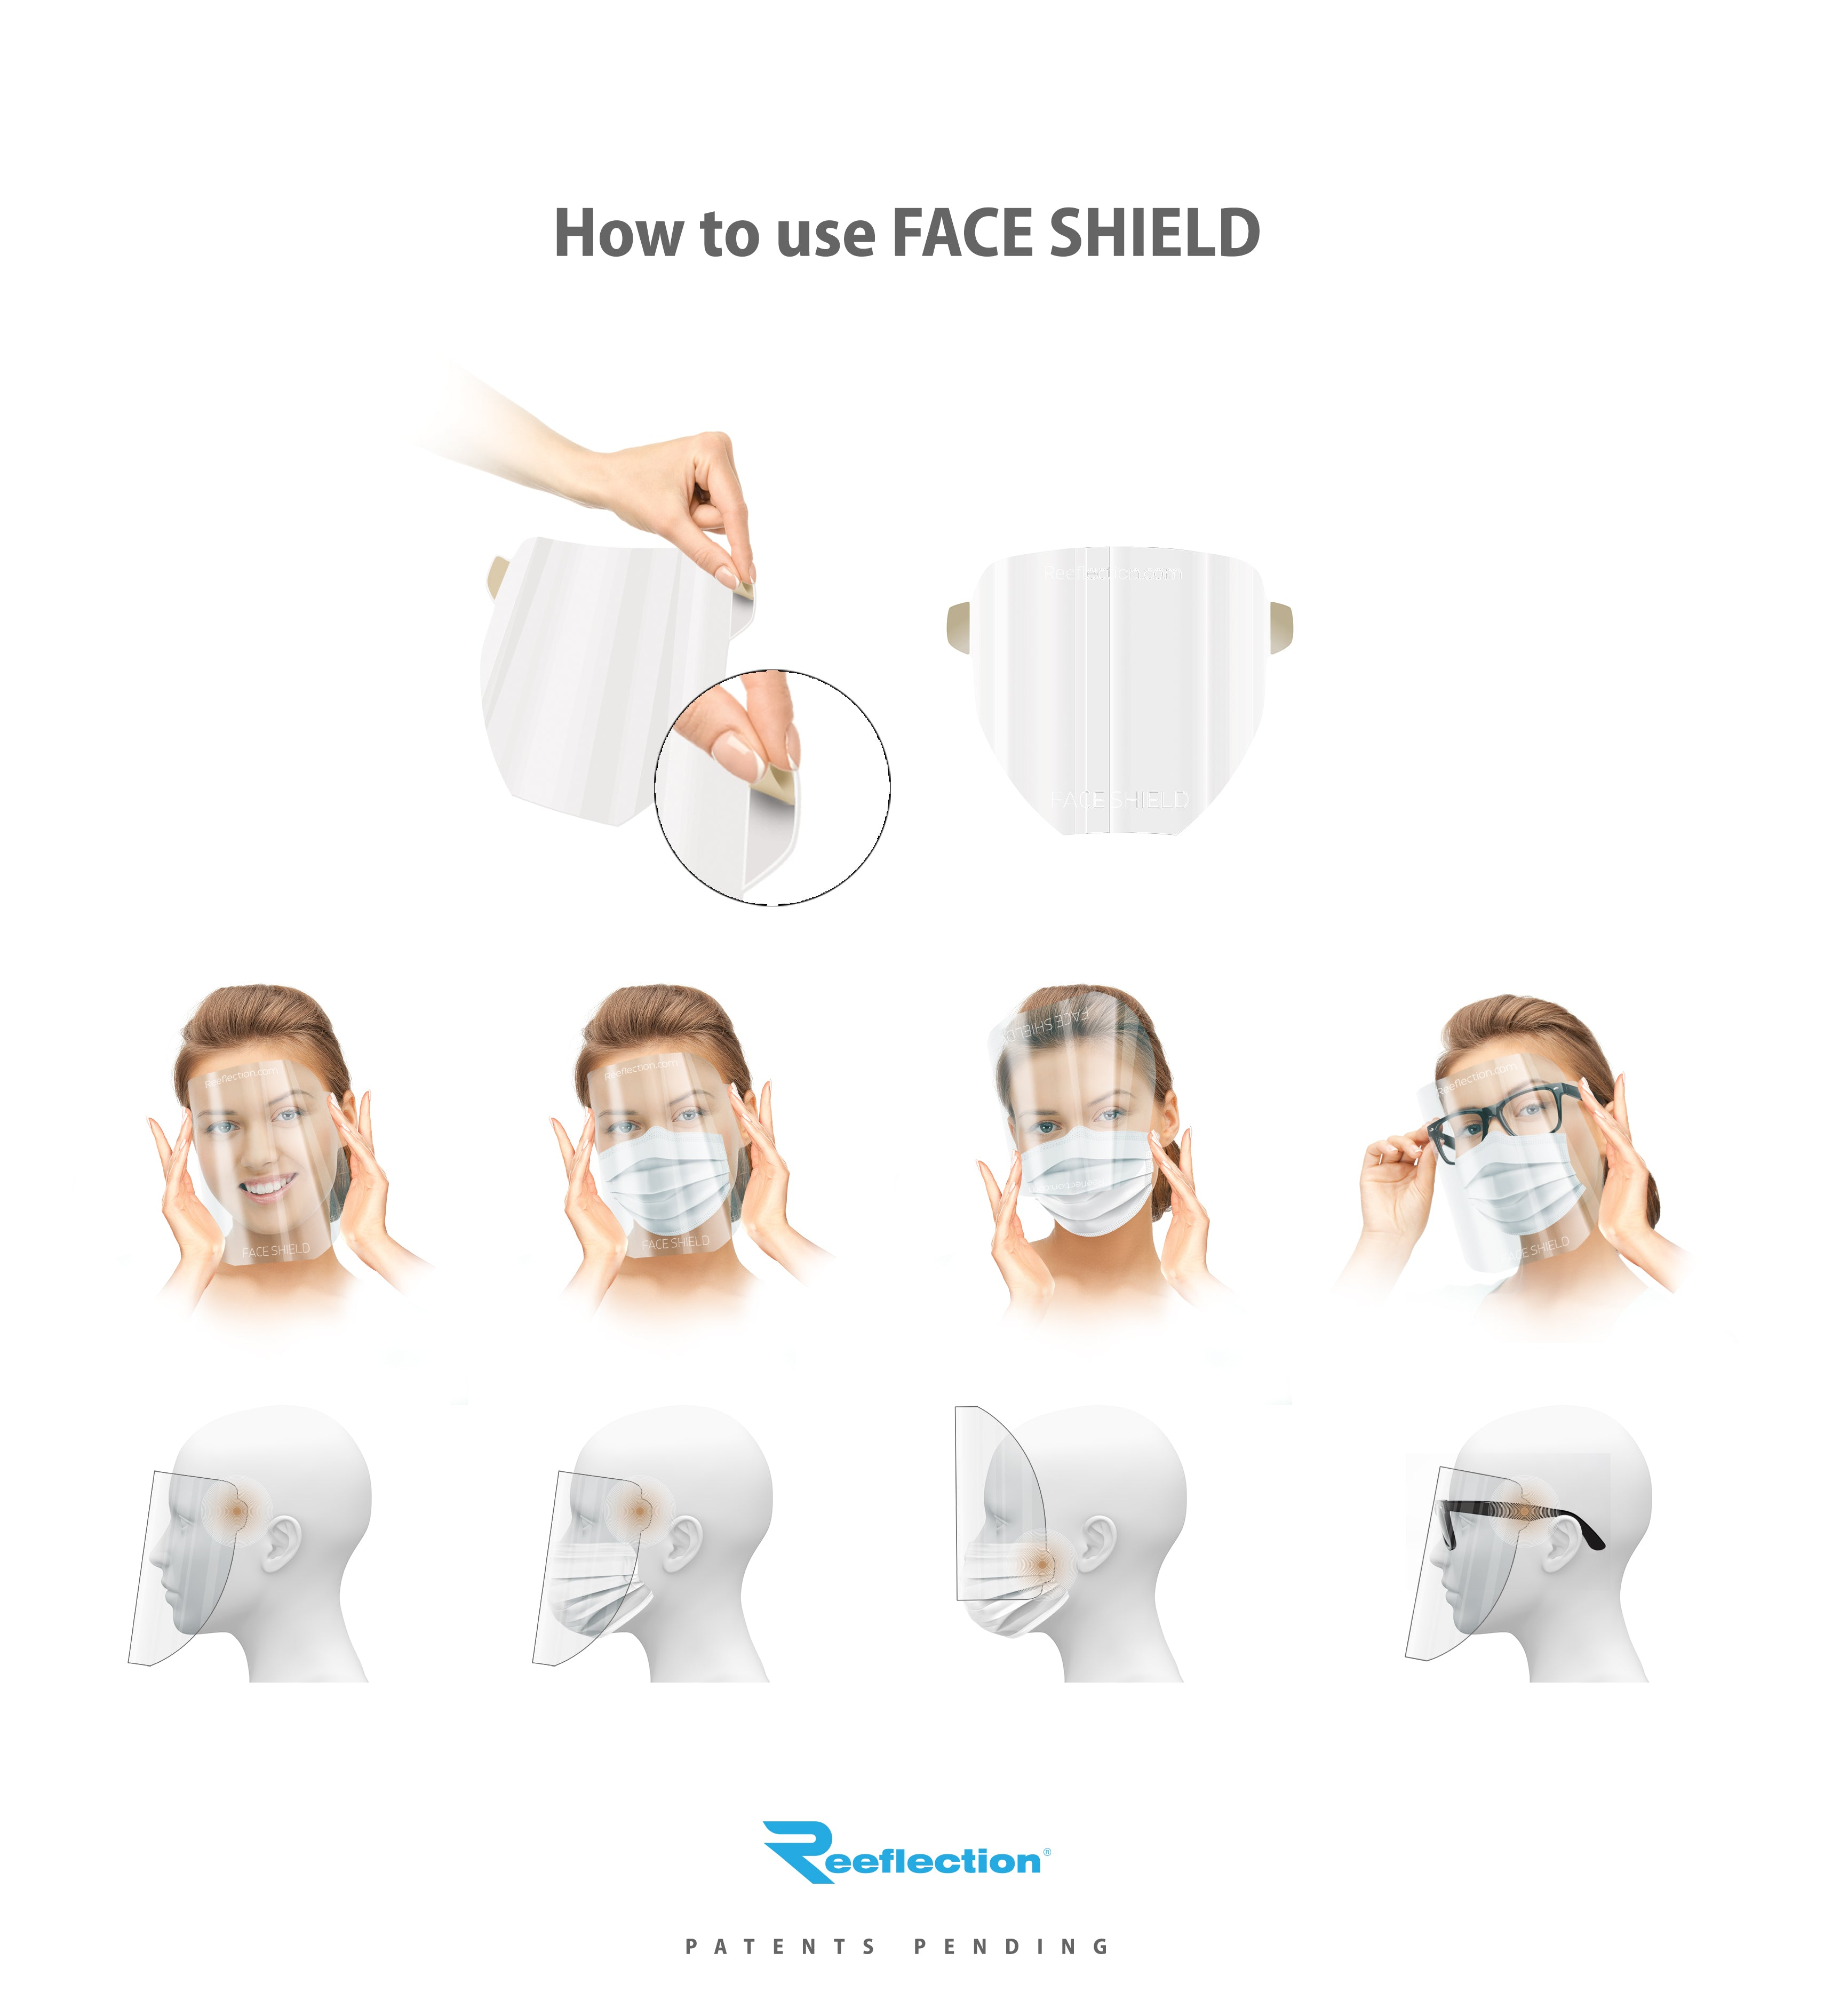 100 Roll pack of face shields in a convenient dispenser box